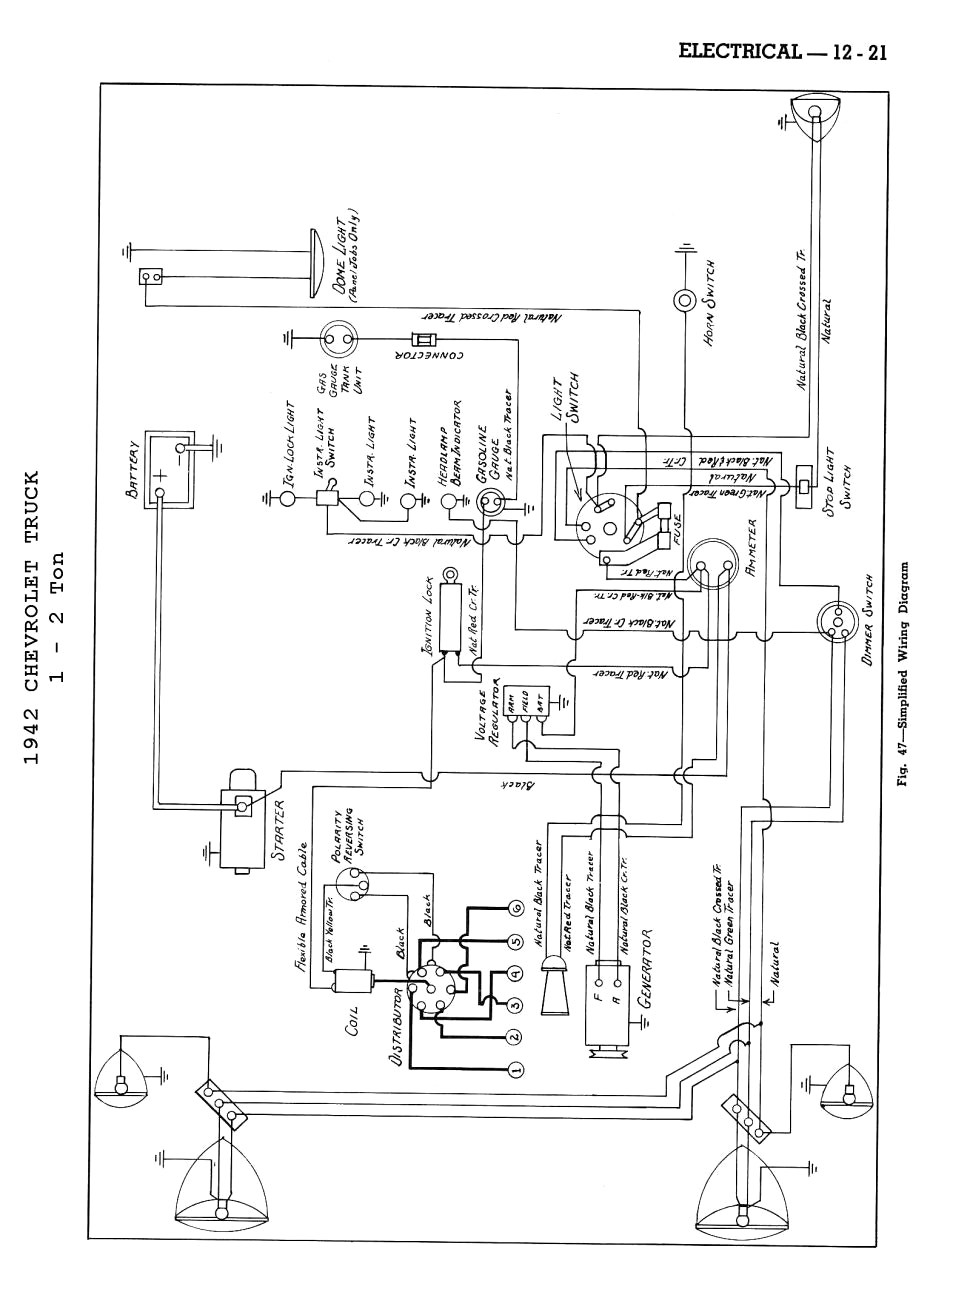 Coleman Mach Rv Air Conditioner Troubleshooting Check Now Blog Dometic Wiring Diagrams Suburban Furnace Outstanding Duo Therm Thermostat Diagram In